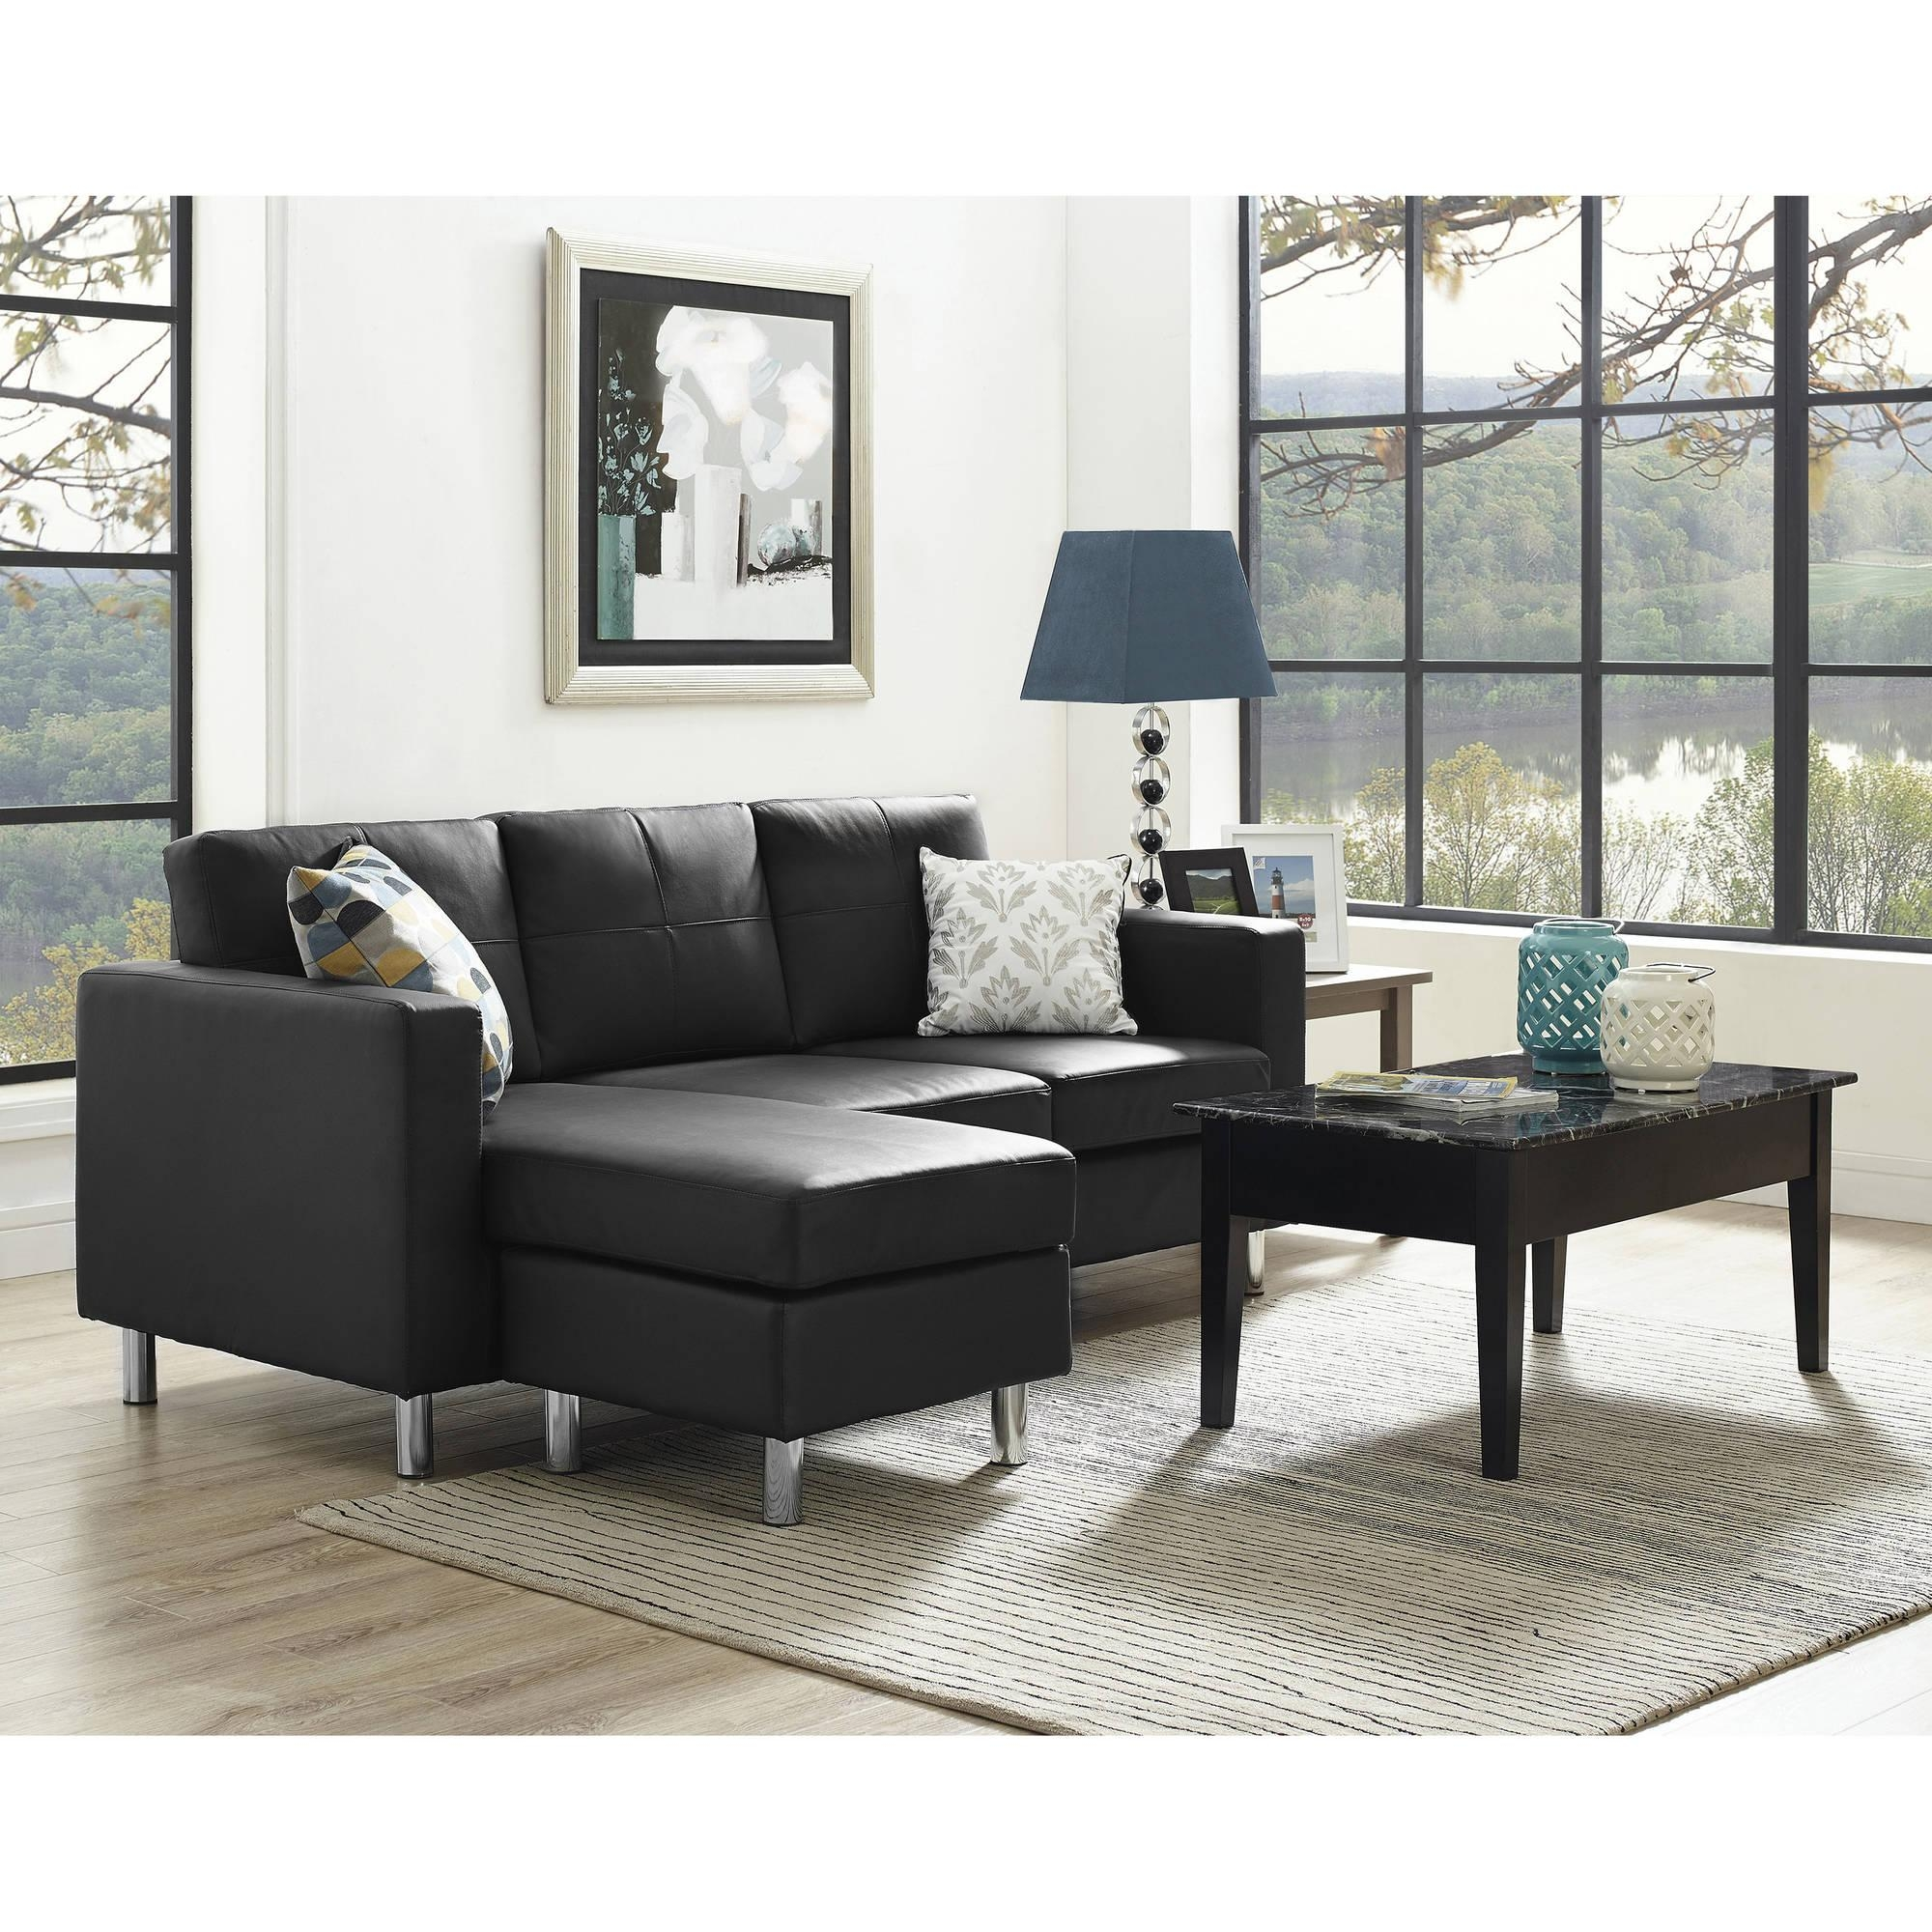 Dorel Living Small Spaces Configurable Sectional Sofa, Multiple In Small Lounge Sofas (Image 7 of 20)